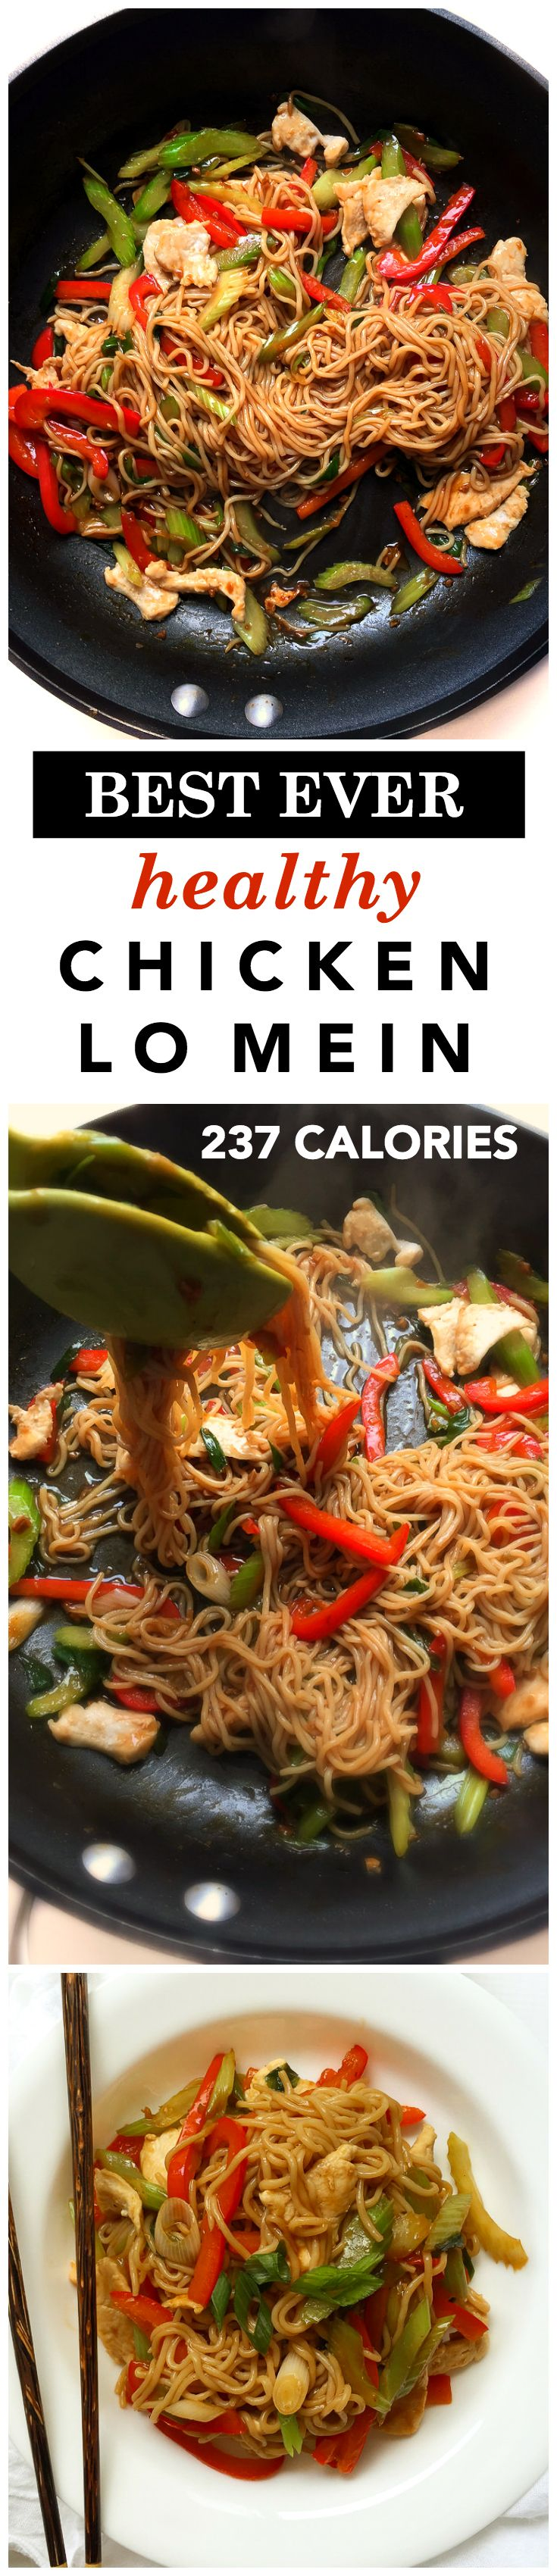 The best healthy chicken lo mein recipe (237 calories)! It's easy, quick, and so good you won't need to order takeout!